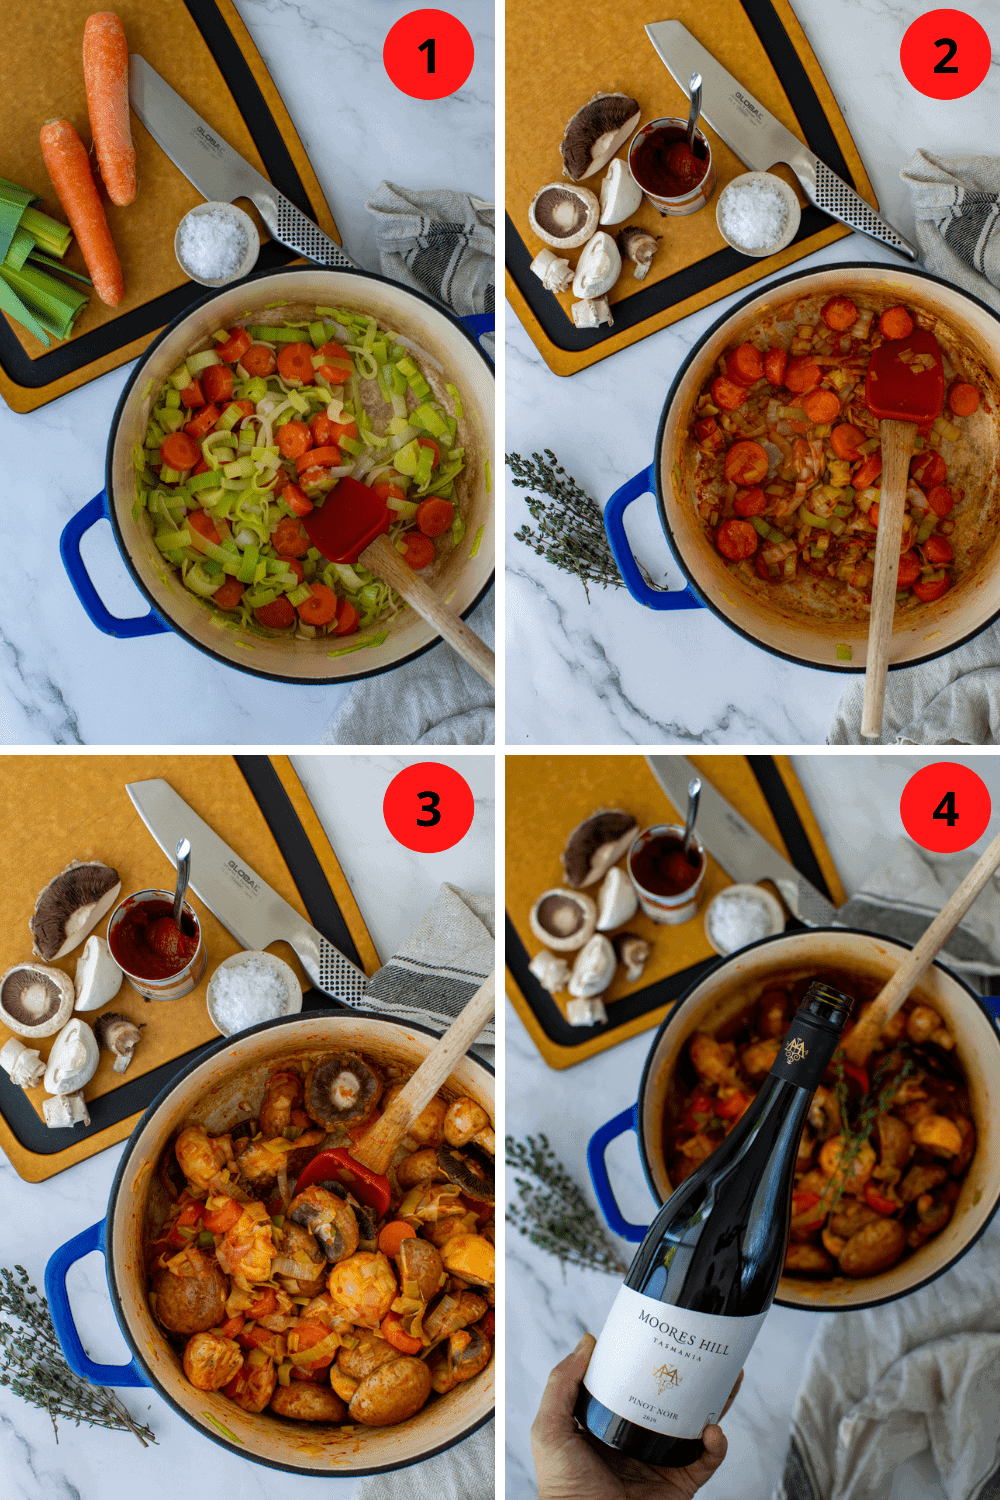 step by step process to make this dish